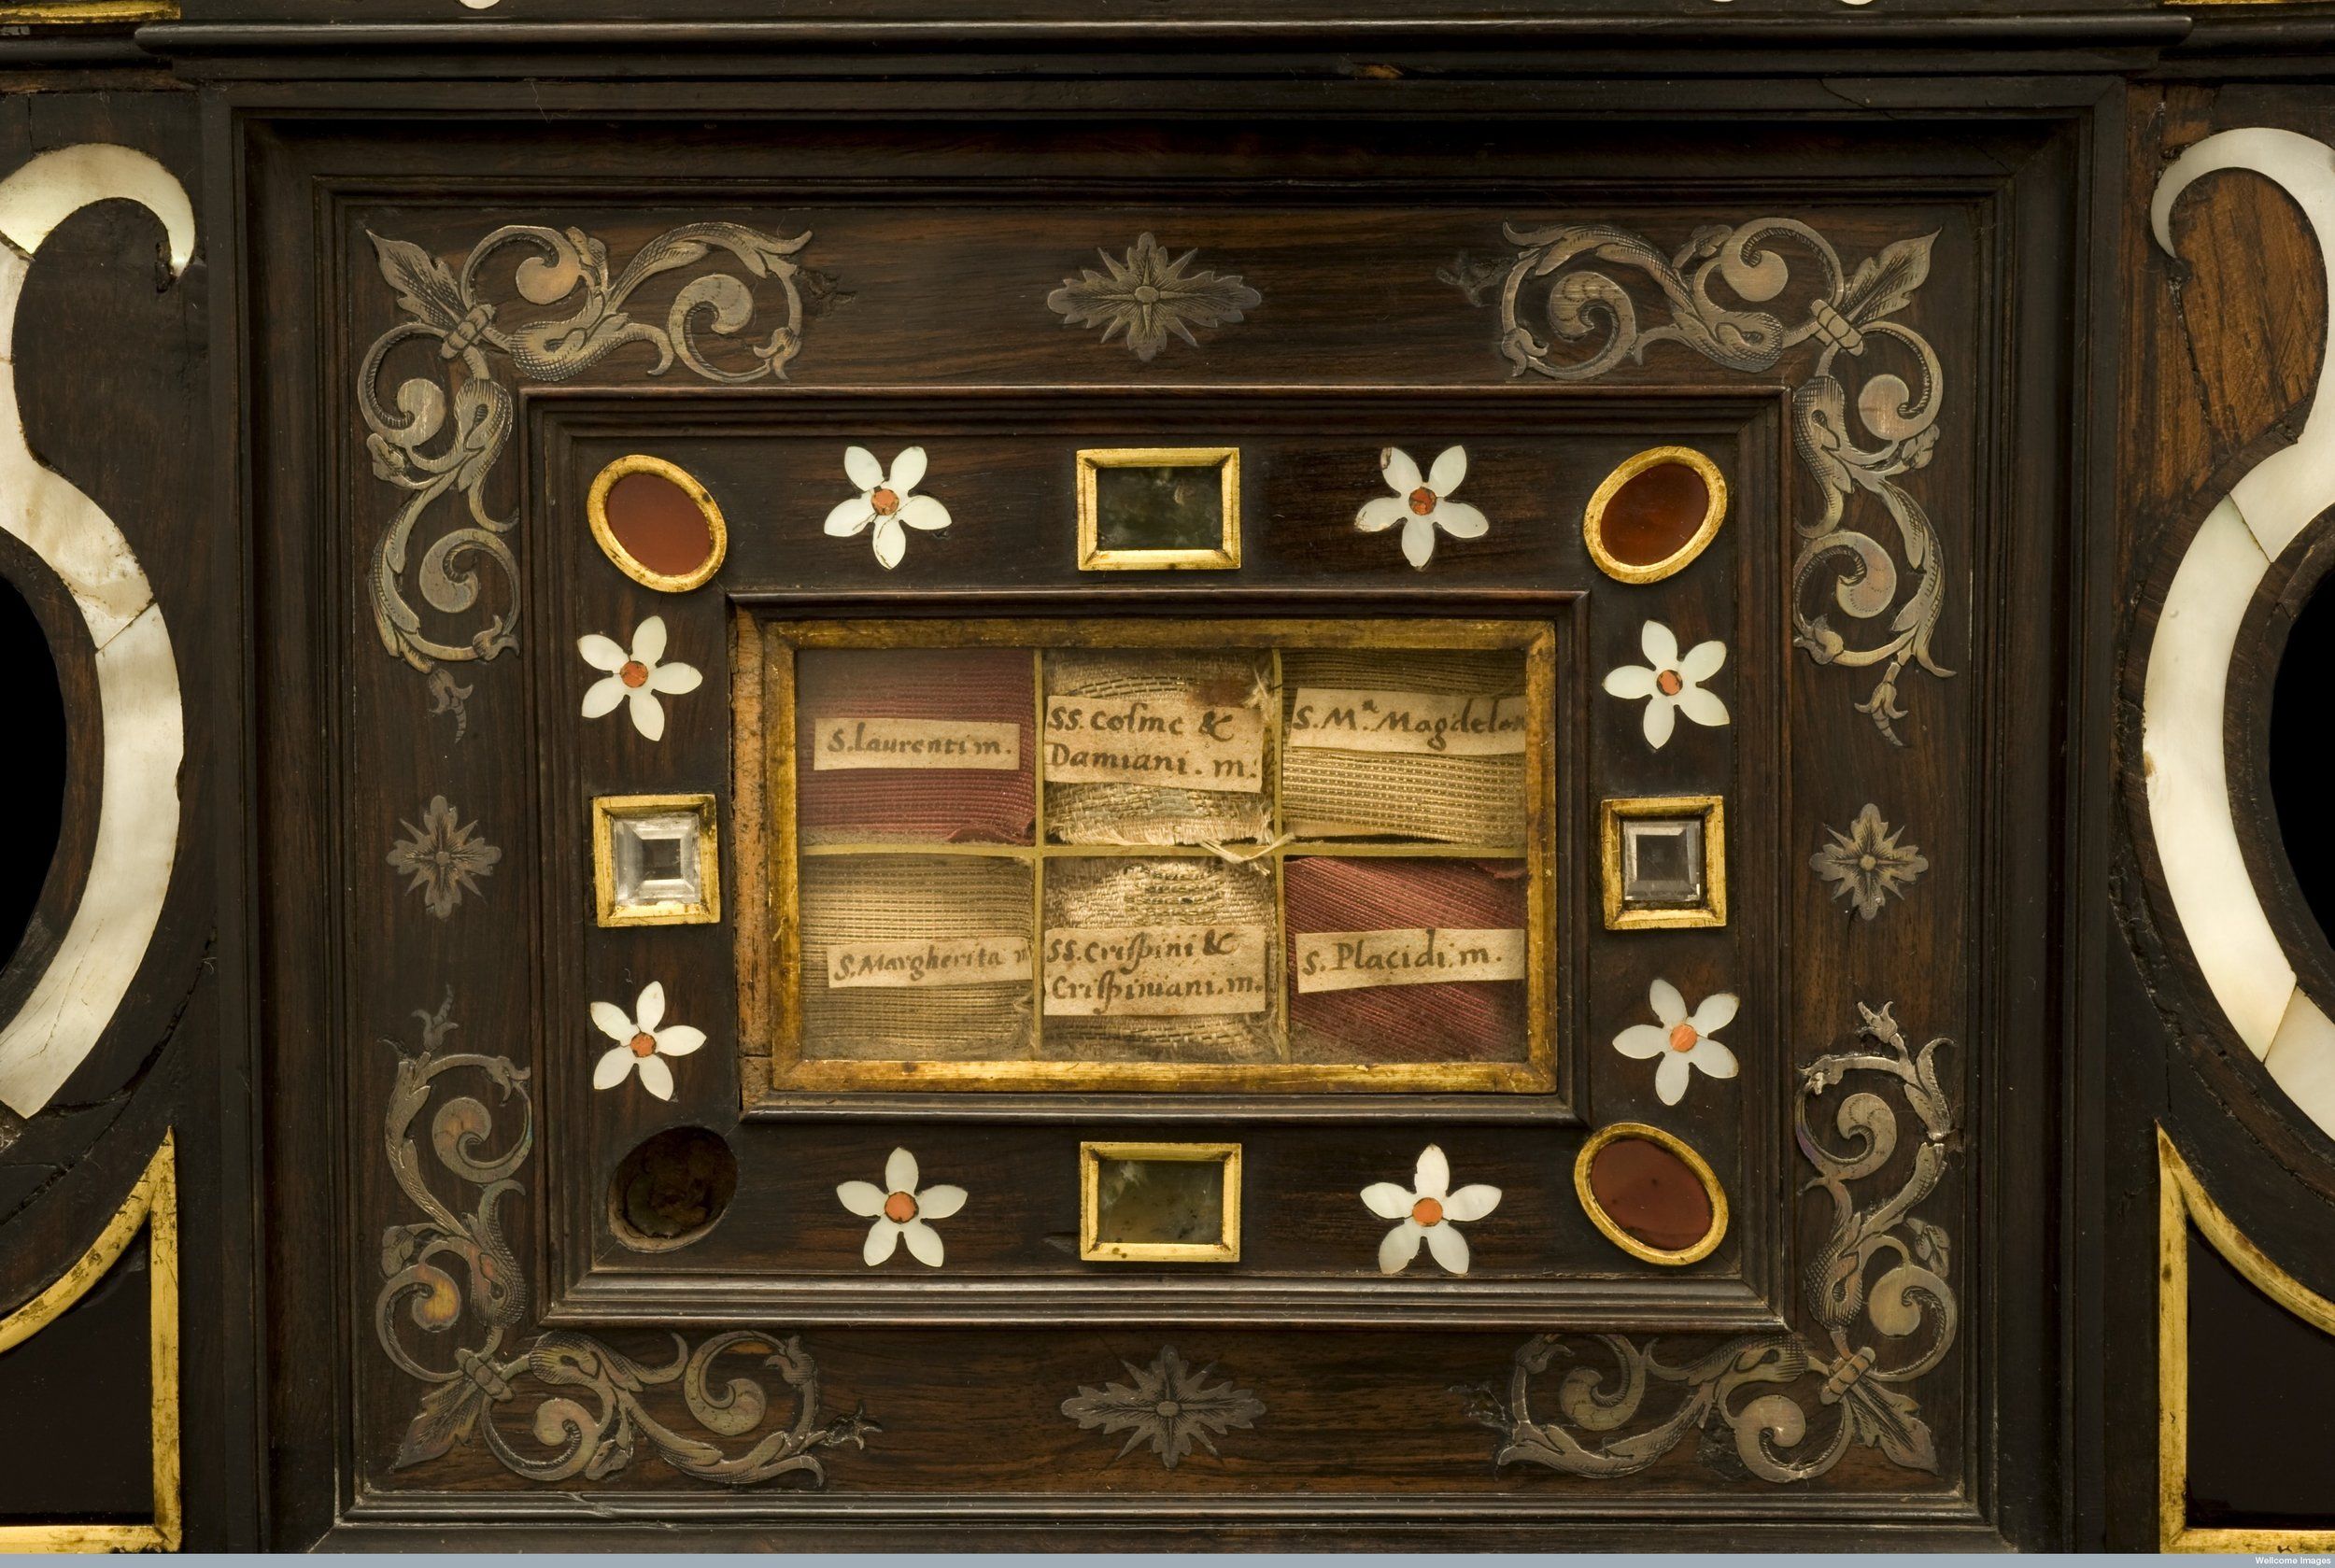 Elaborately carved and inlaid wooden reliquary chest containing relics of several saints, Spanish 18th century.  Wellcome Images L0058440.